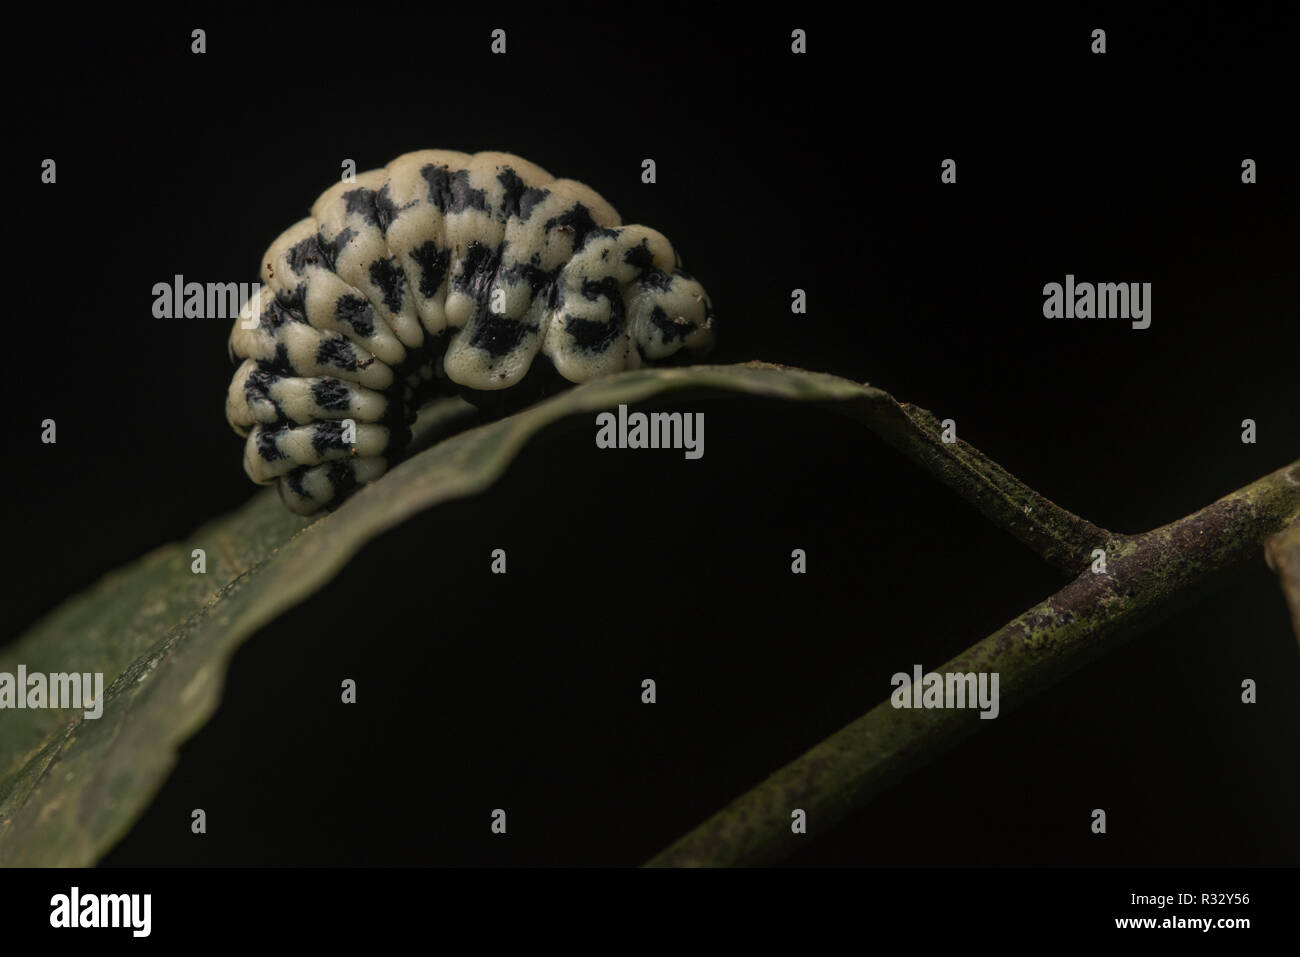 A beetle grub of some sort from Madre de Dios, Peru.  Beetles are one of the most diverse groups of life, and this one remains a mystery. - Stock Image